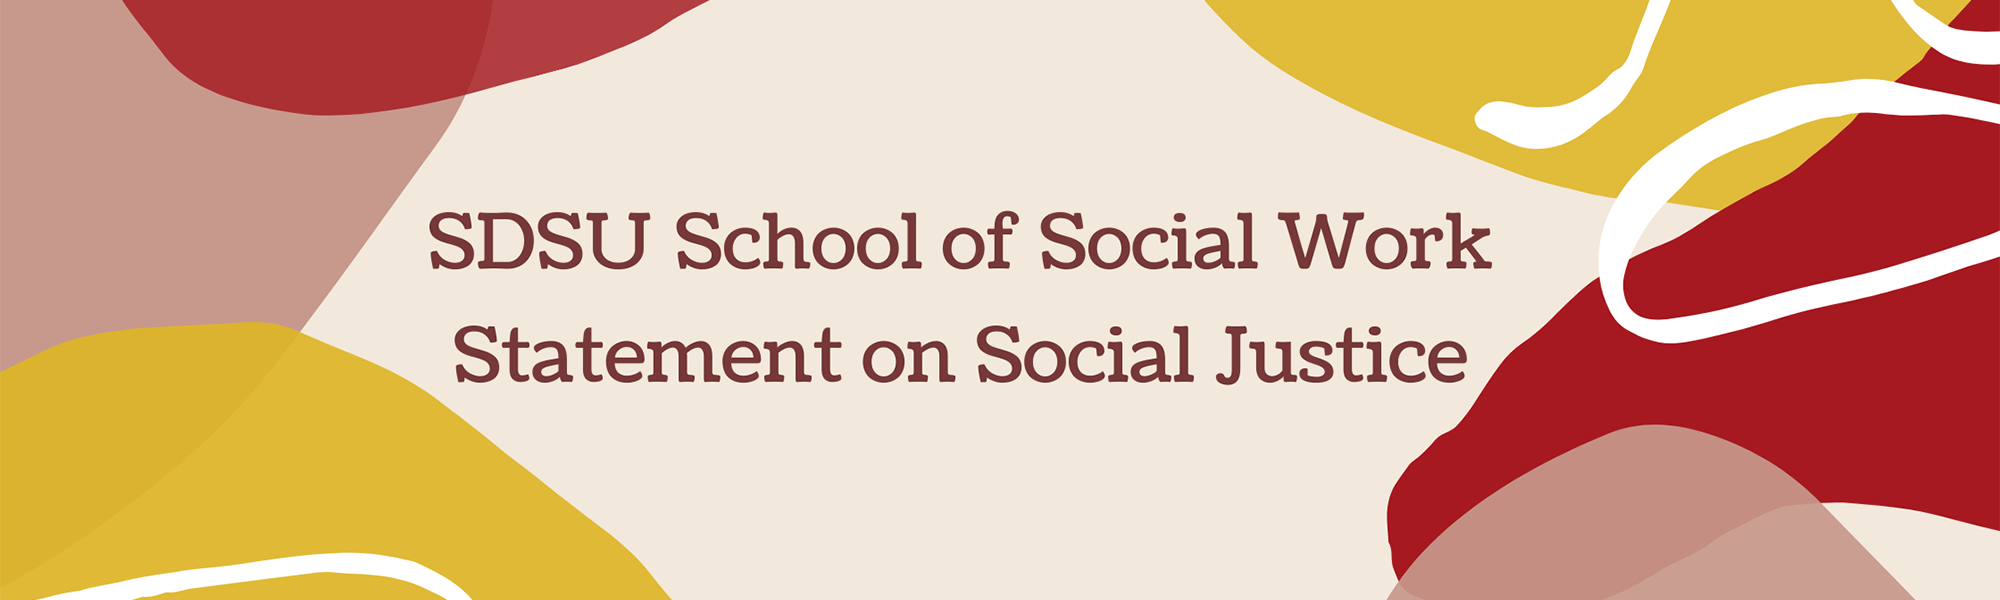 Statement on Social Justice